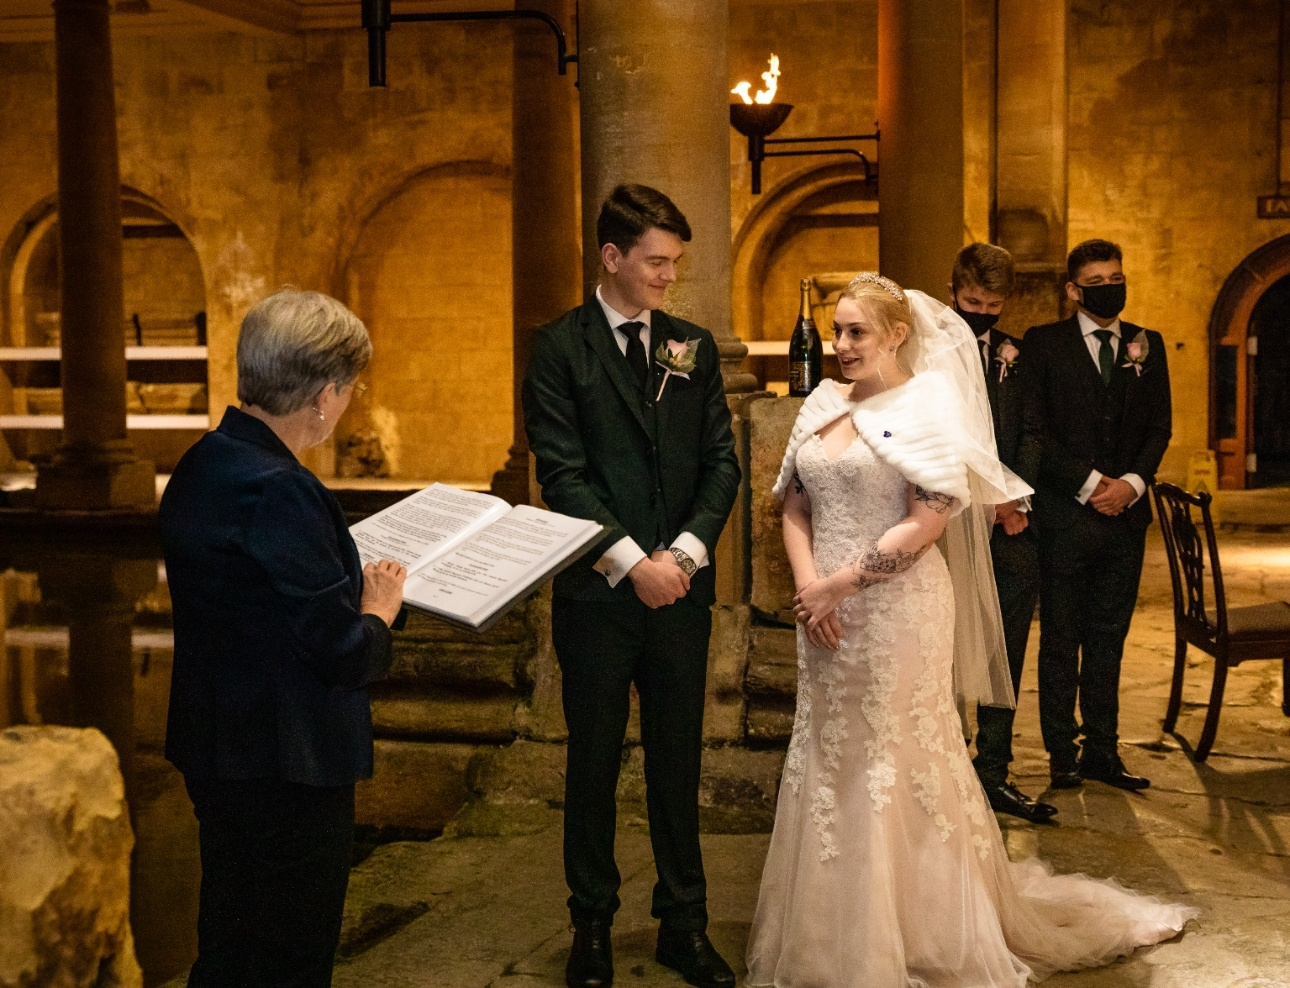 Mr and Mrs White-Christmas get married at the Roman baths in Bath